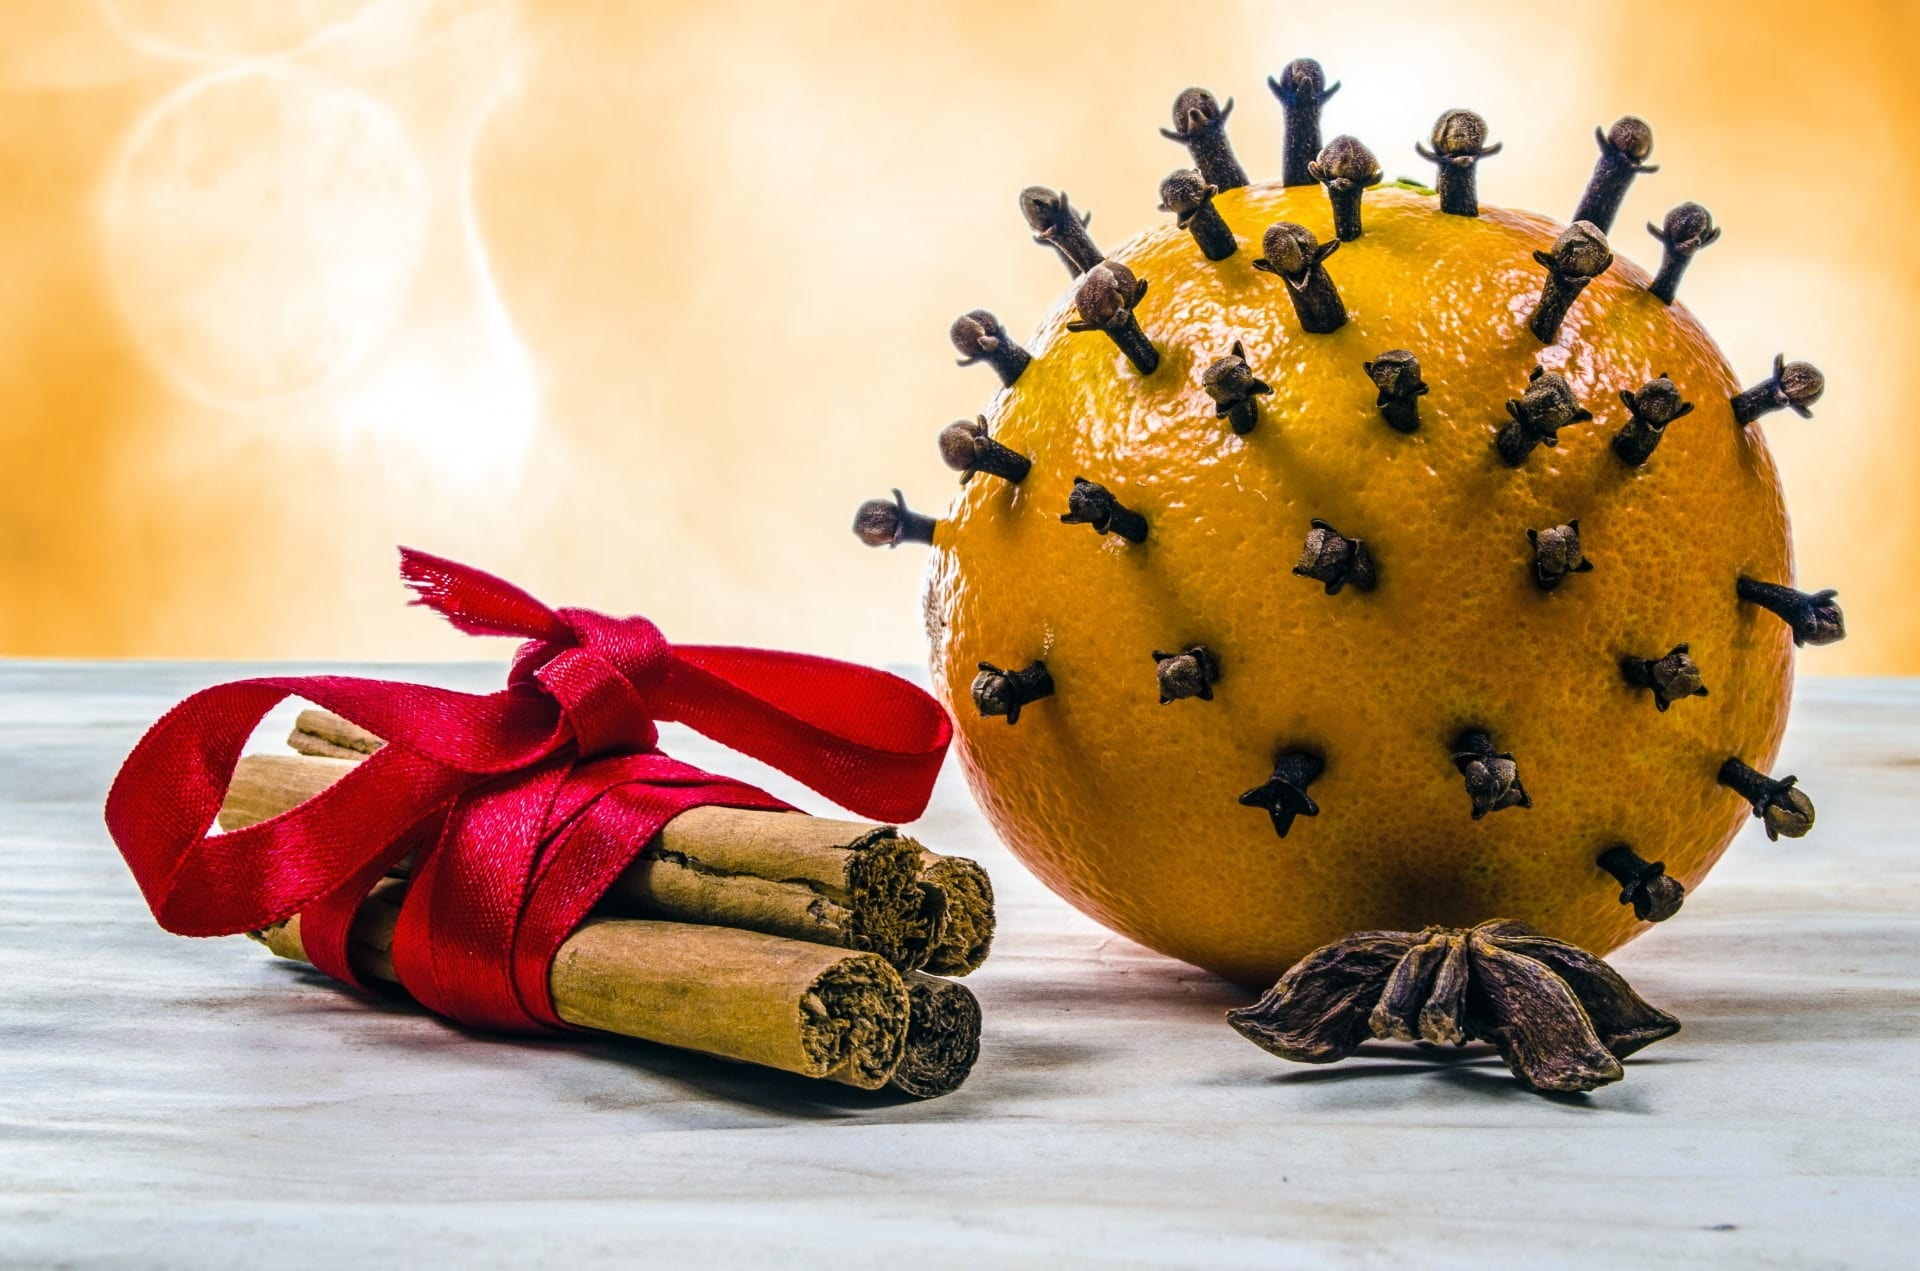 A bundle of cinnamon sticks in a ribbon sits next to a clove orange. Cinnamon sticks and a clove orange help enhance the warm apple and hemp flavors of our CBD mulled apple cider.